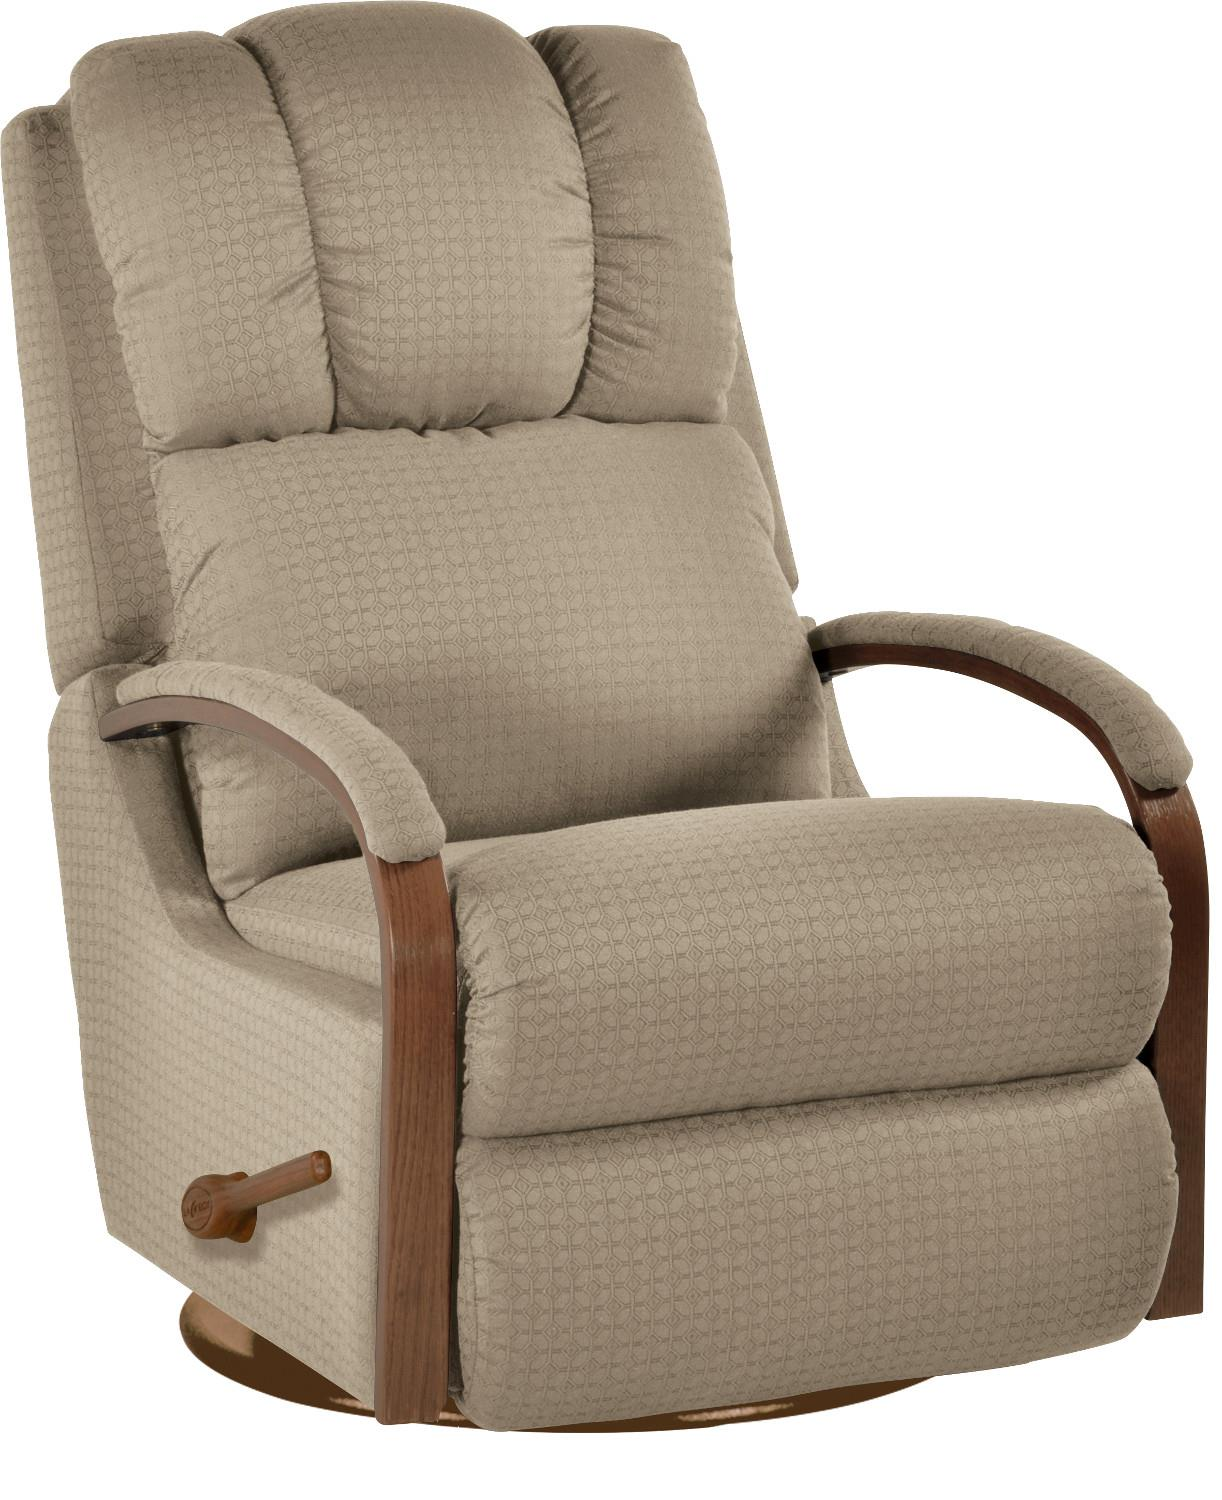 lazy boy glider rocking chair stackable dining chairs harbor town reclina swivel recliner by la z